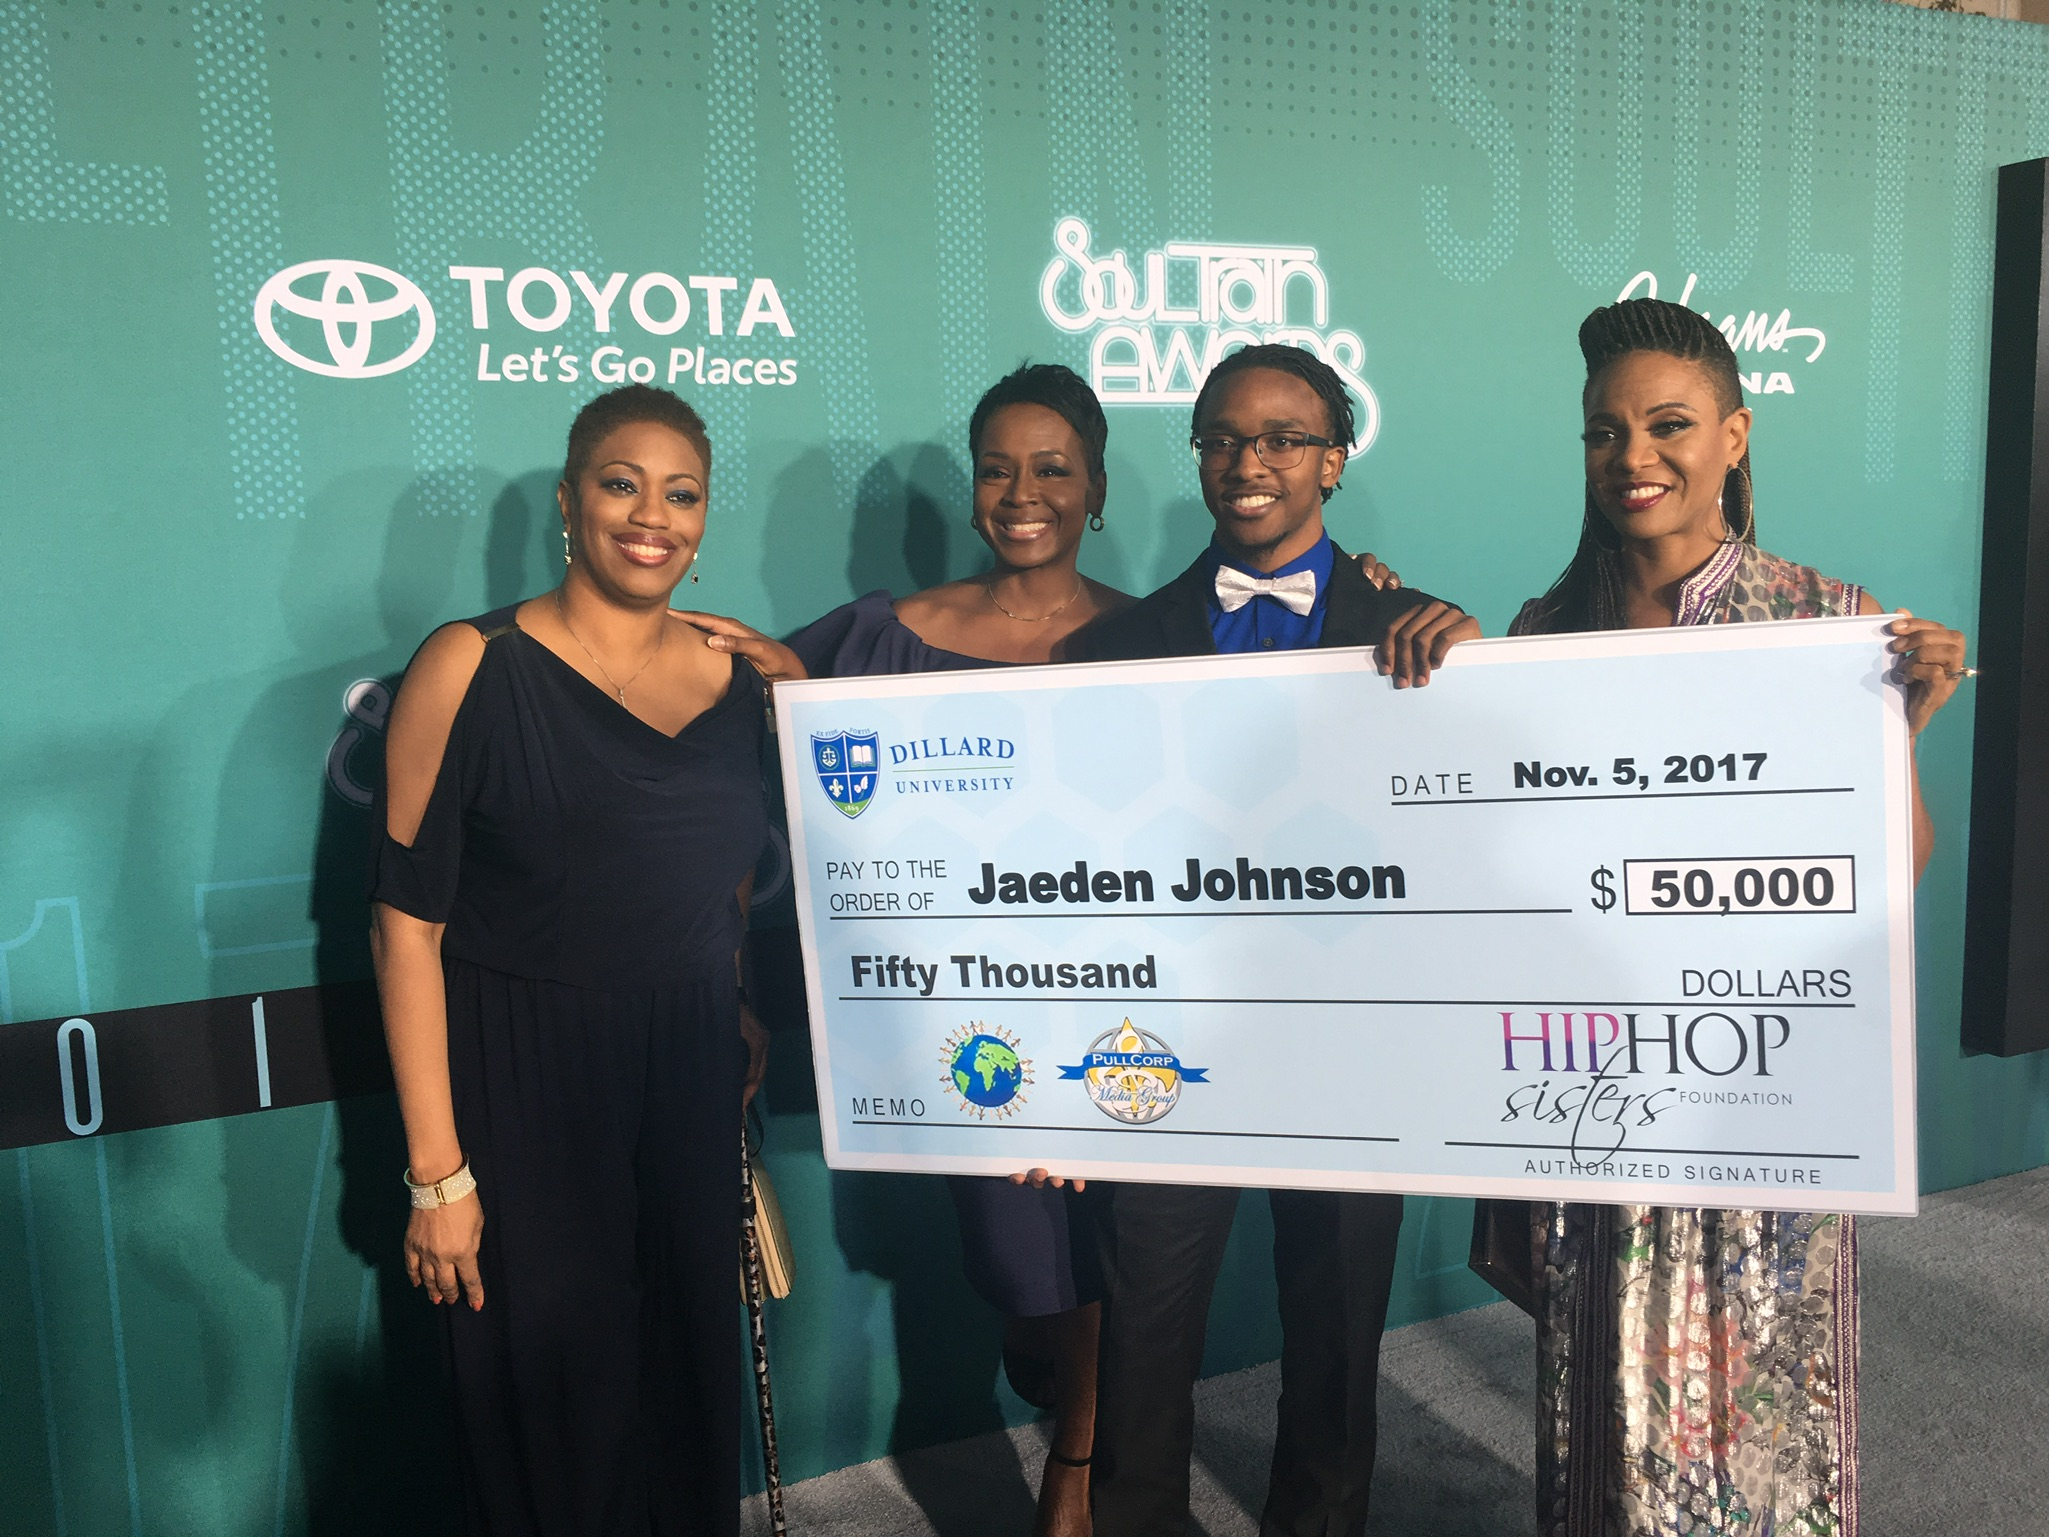 Congrats to Jaeden Johnson 2017 #EducateOurMen Scholarship Winner!